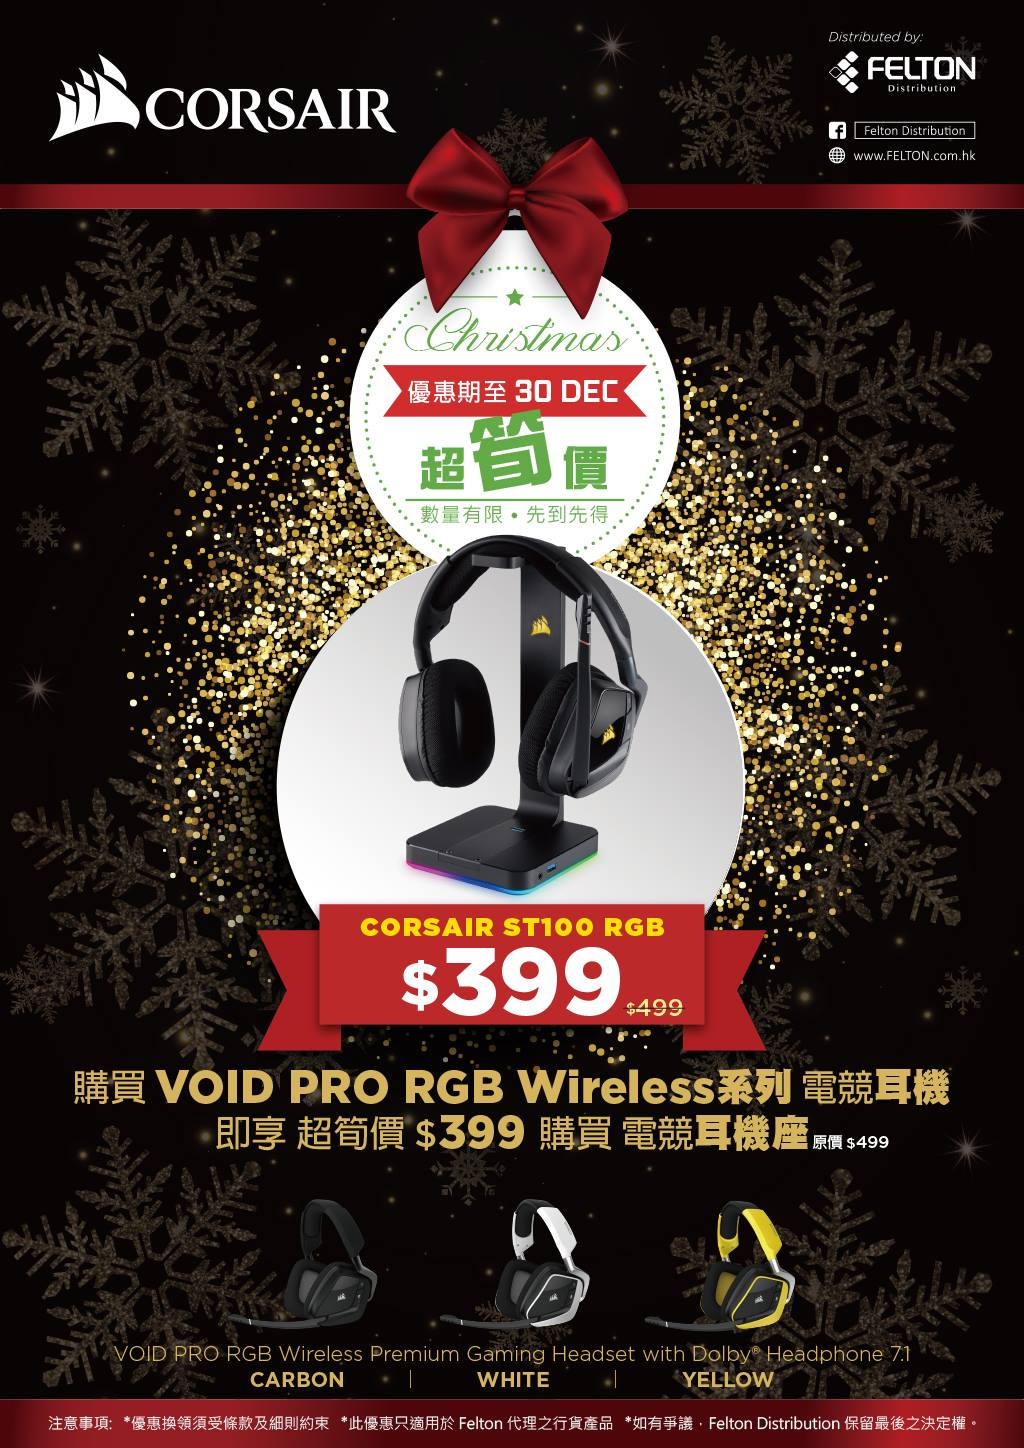 CORSAIR Promotion